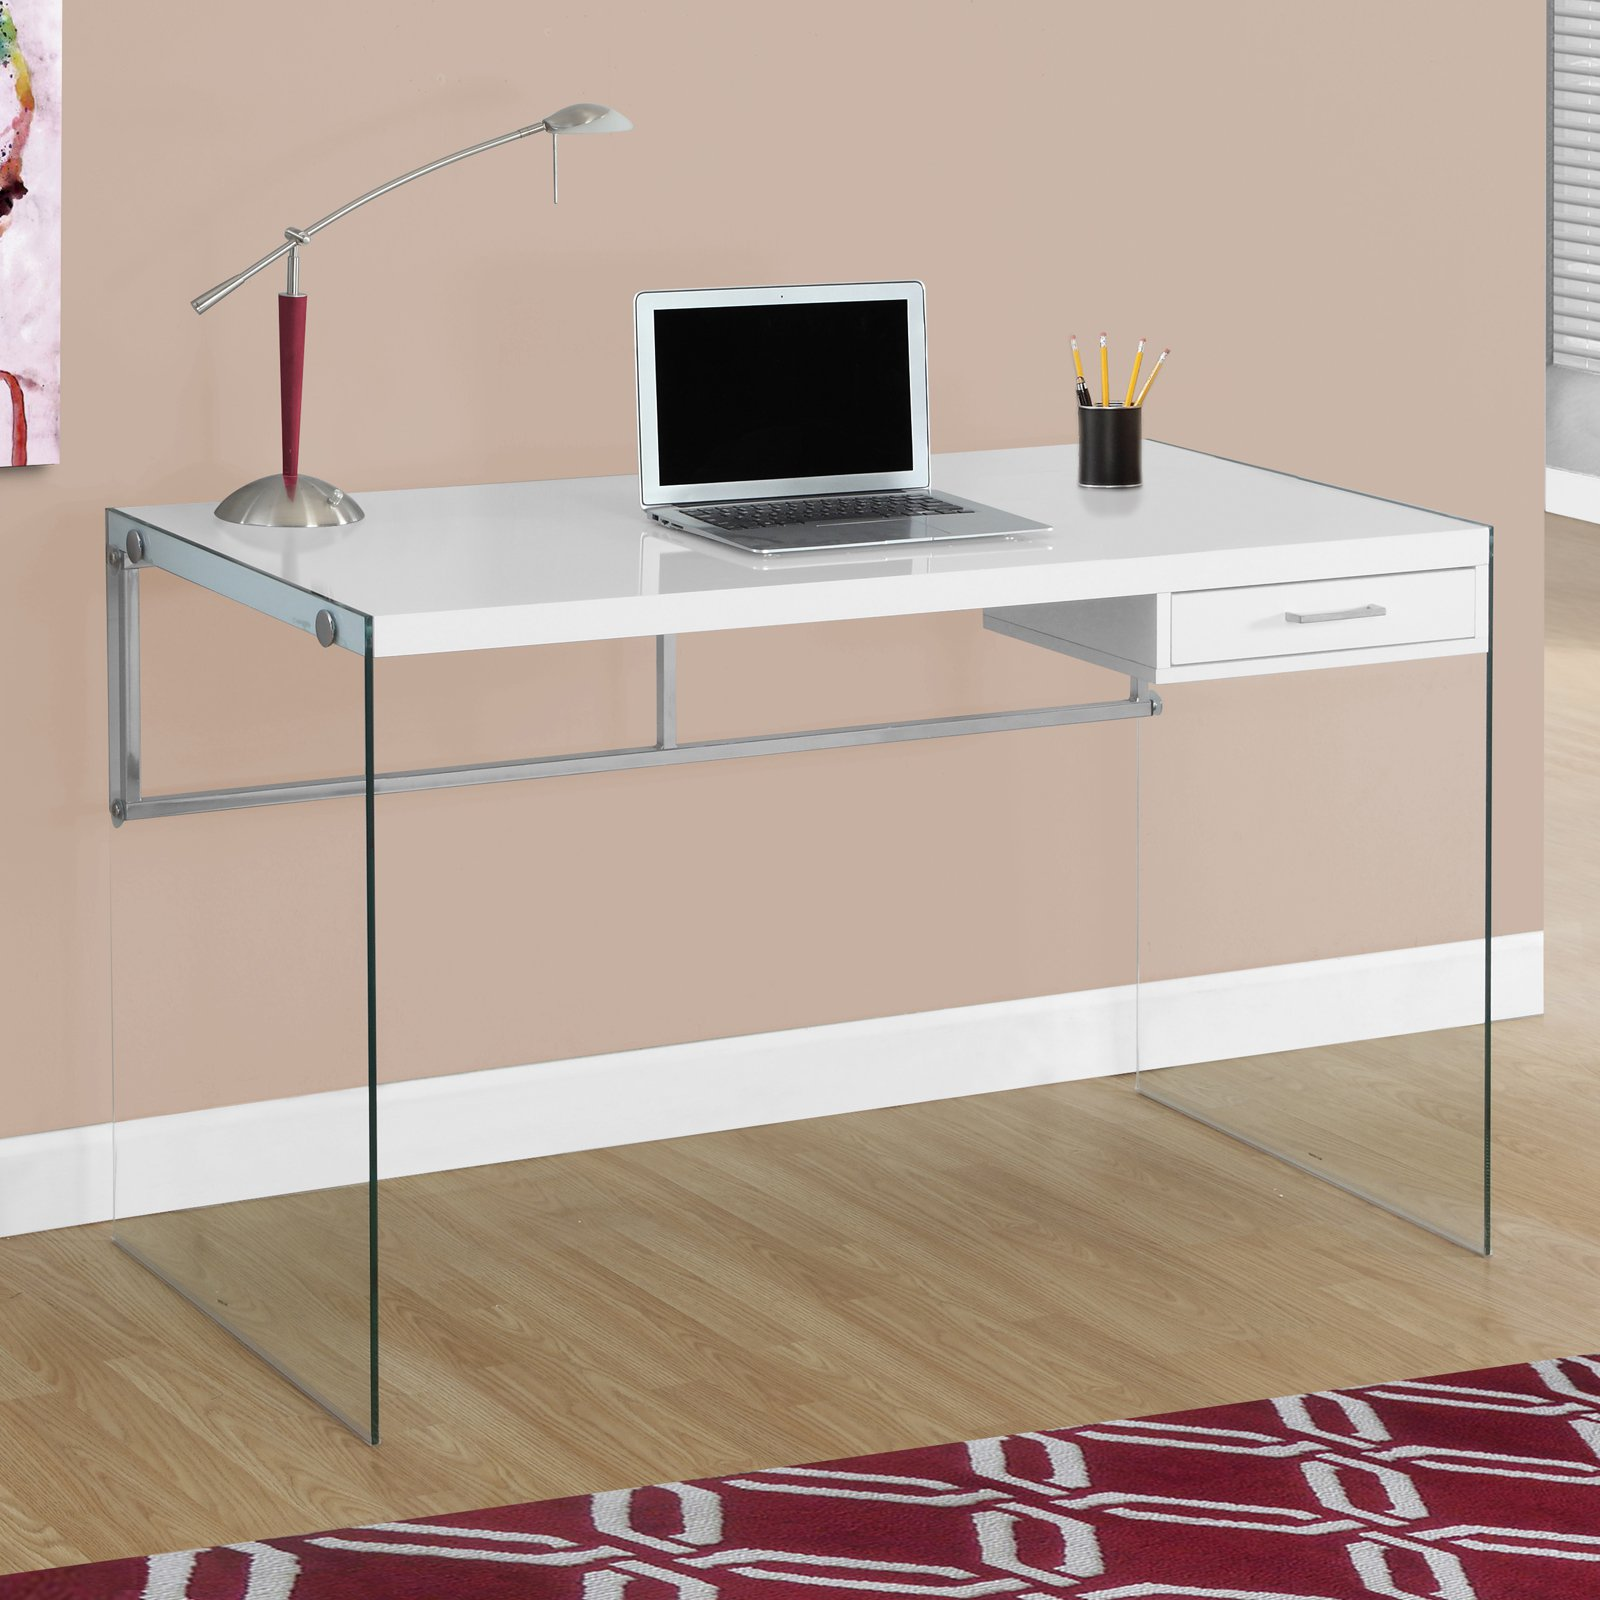 Monarch Computer Desk 48L Glossy White Tempered Glass Walmartcom